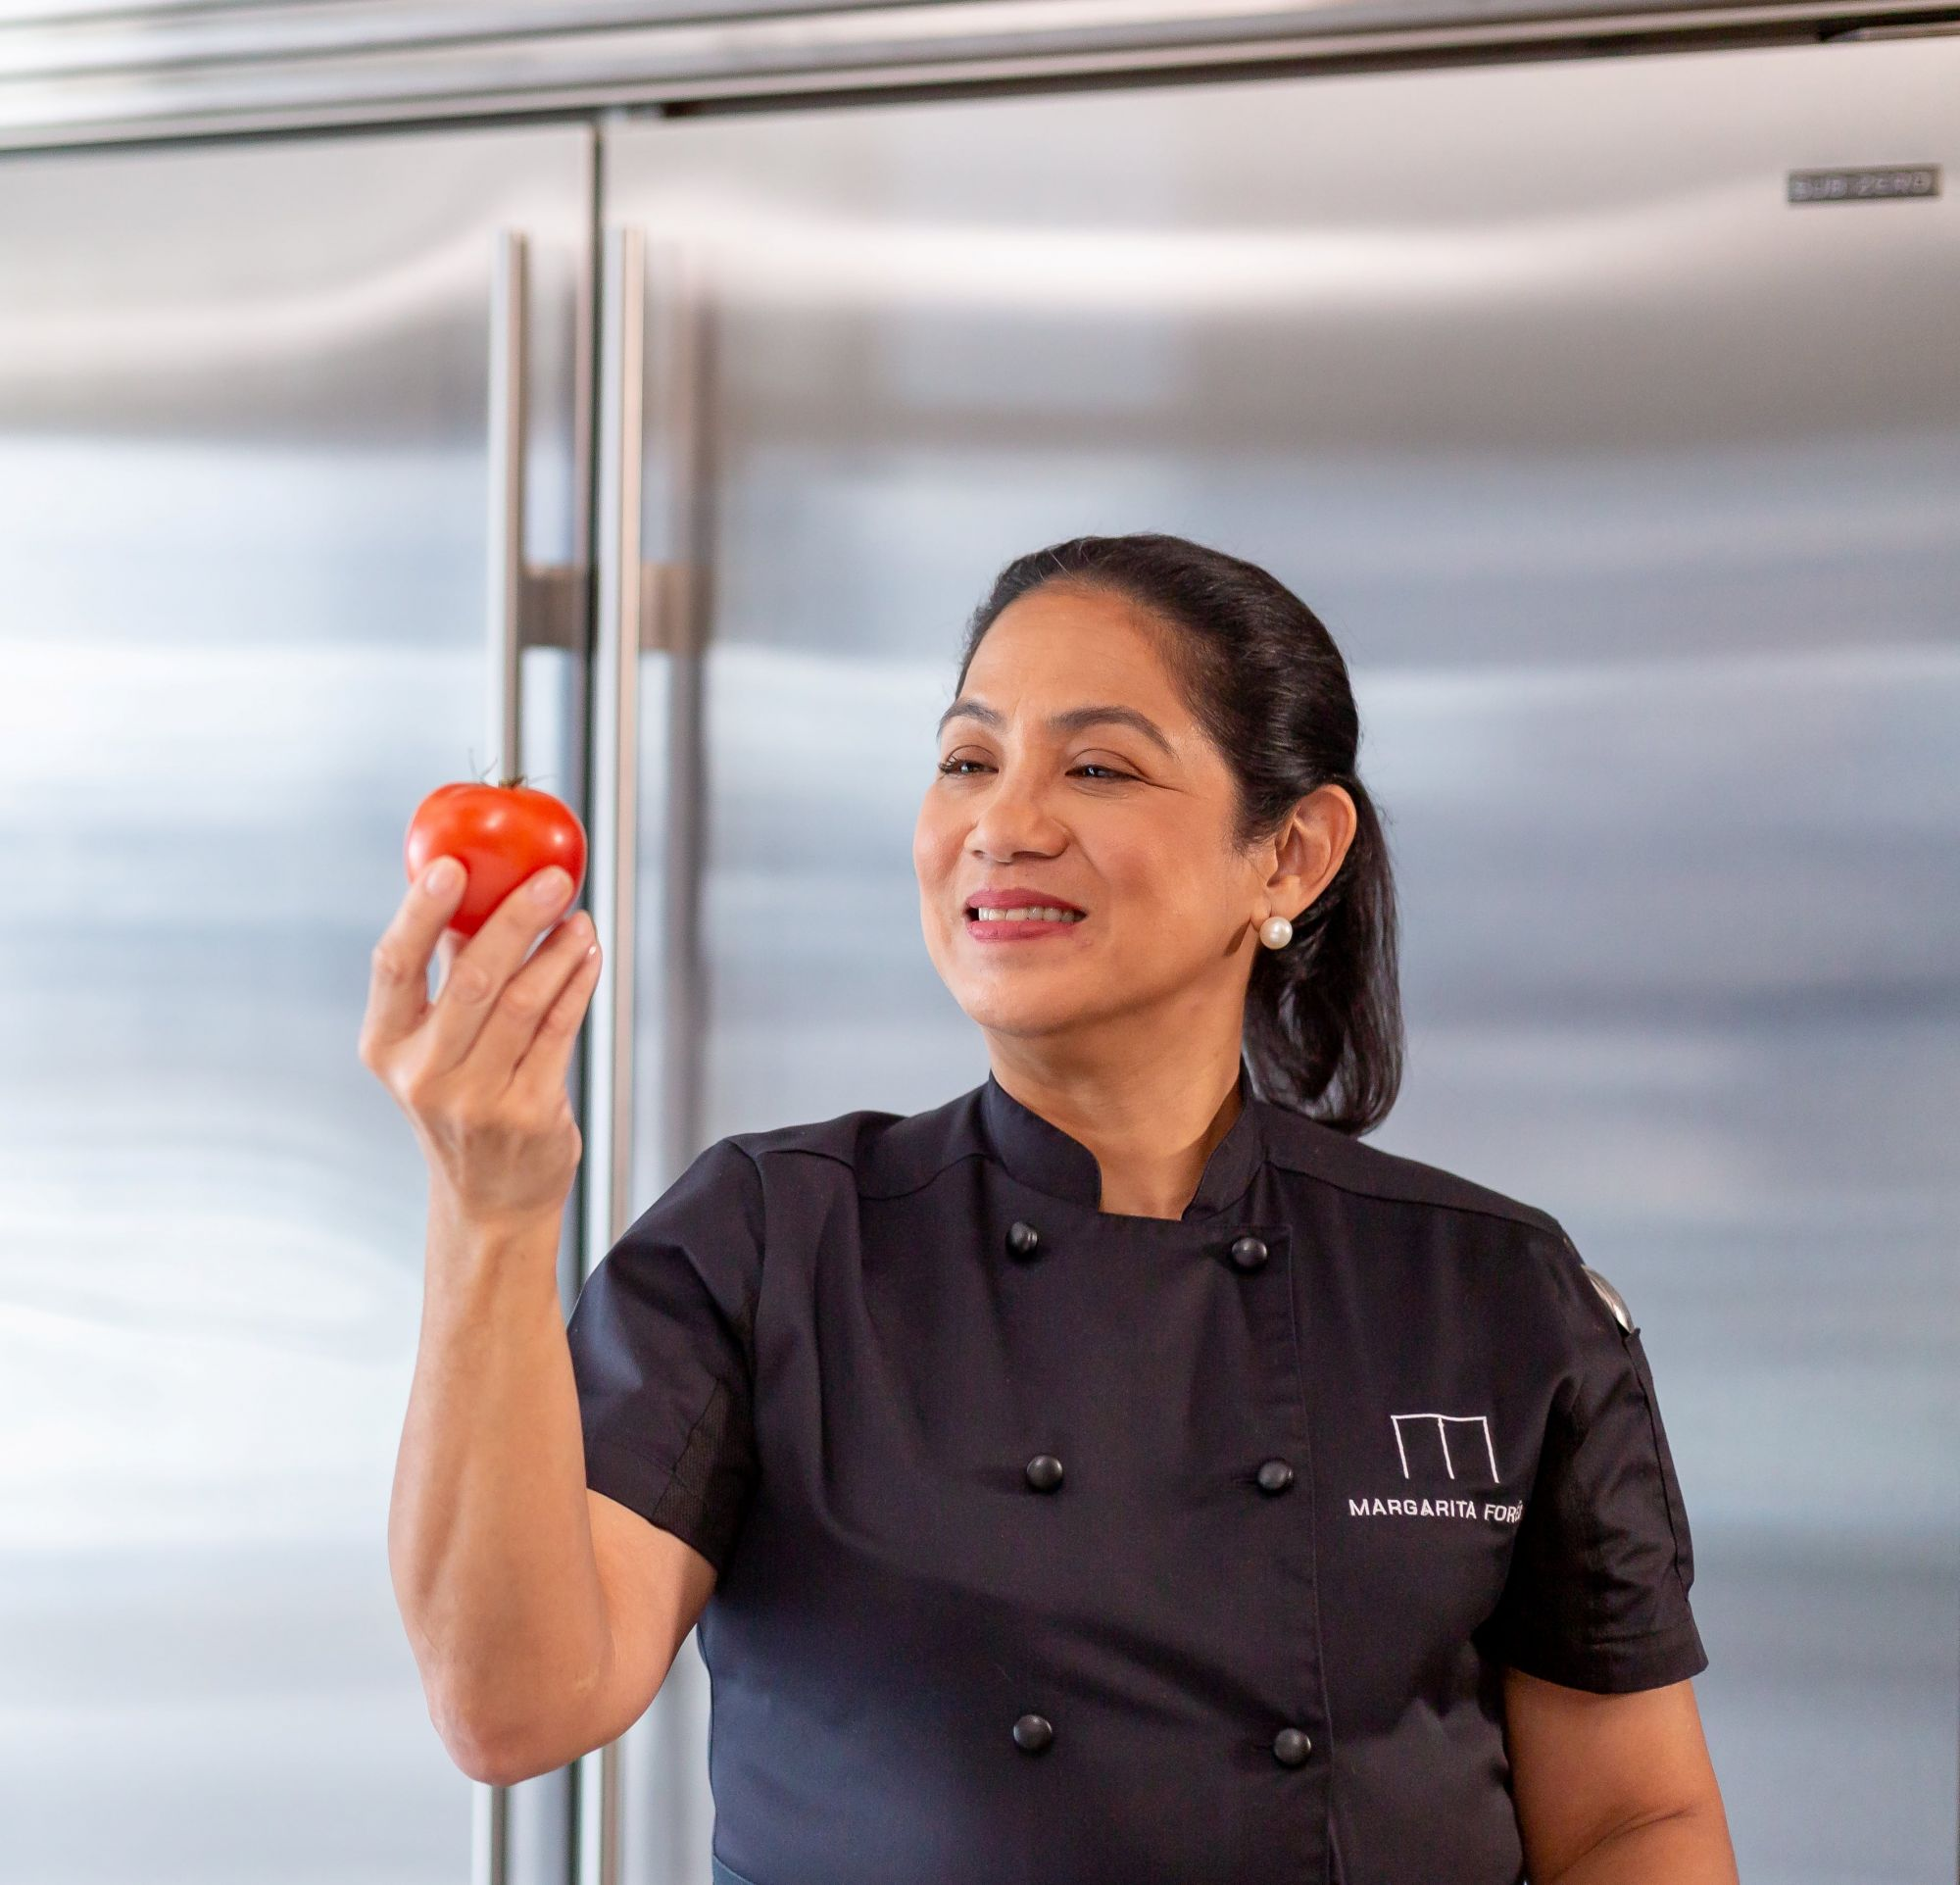 Fresh Food Matters to Chef Margarita Forés